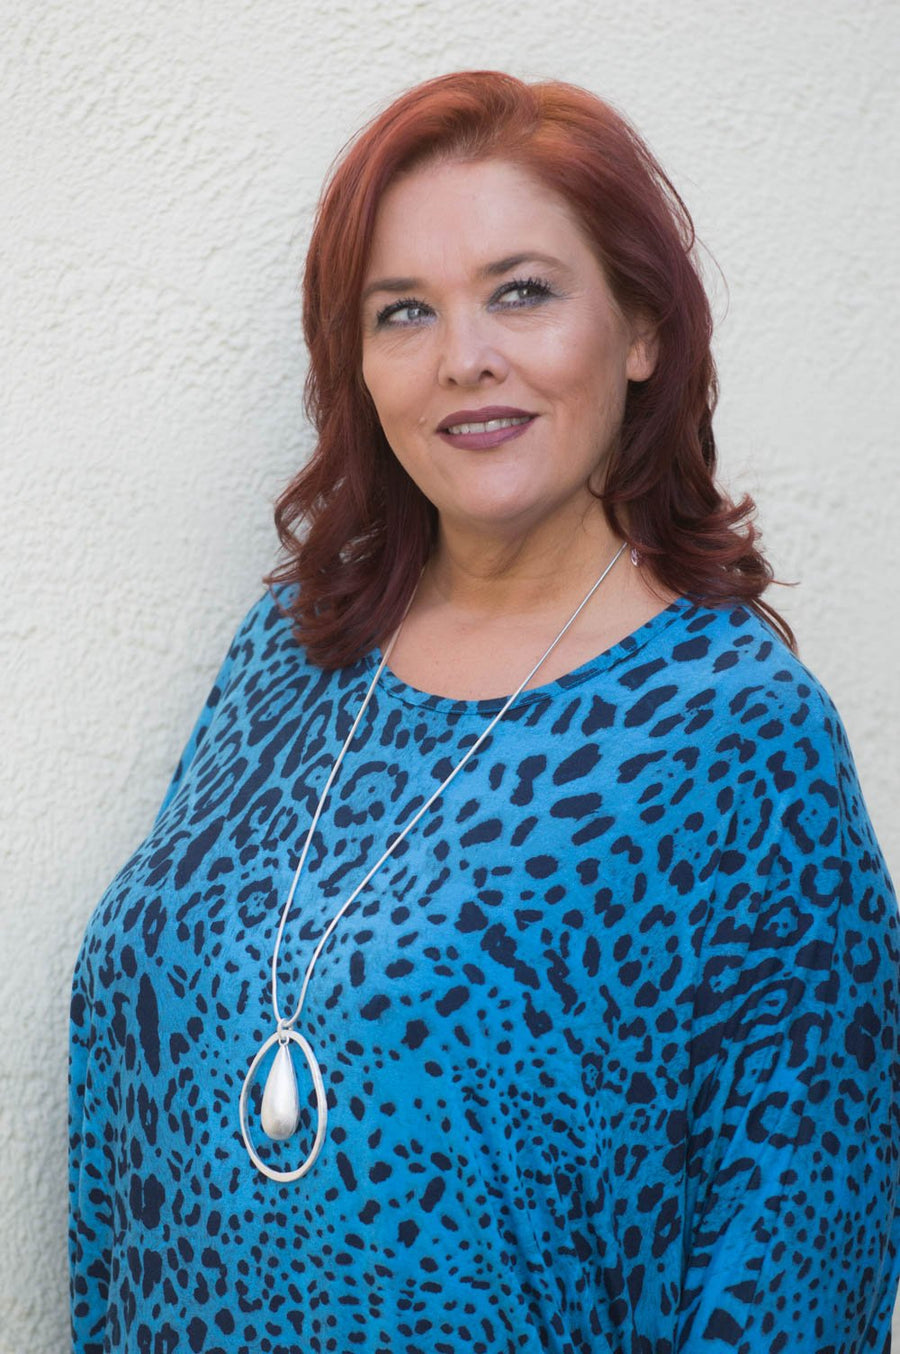 Bright Blue Leopard Print Top Curve - Mandy's Heaven